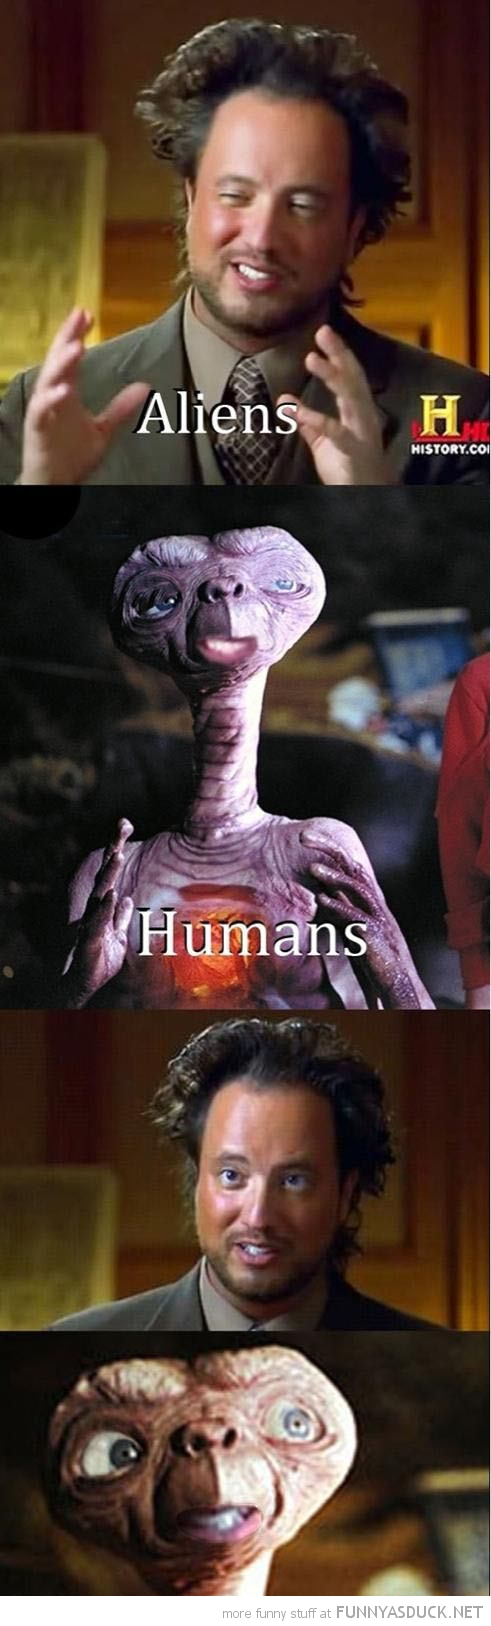 ancient aliens humans et history channel funny pics pictures pic picture image photo images photos lol